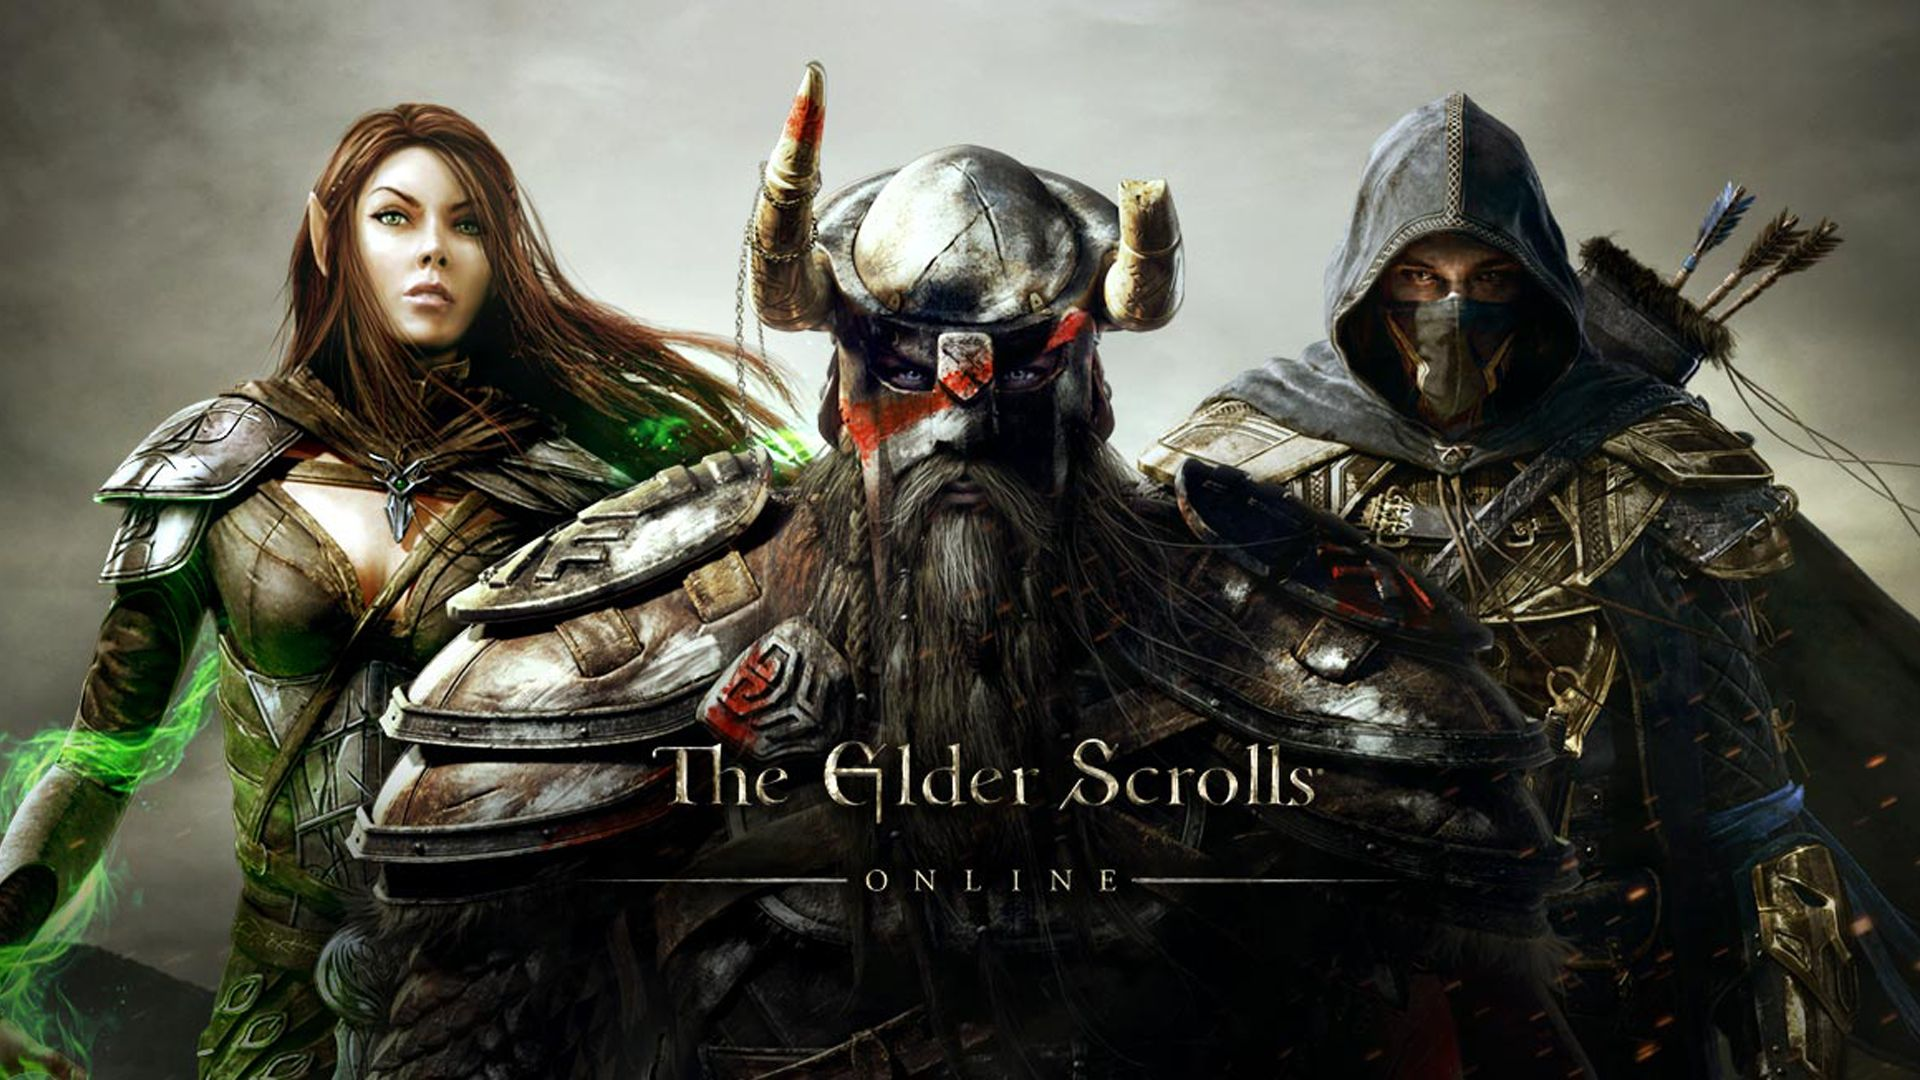 Photo of Elder Scrolls Online Dropping Subscription for PC, PS4, and Xbox One